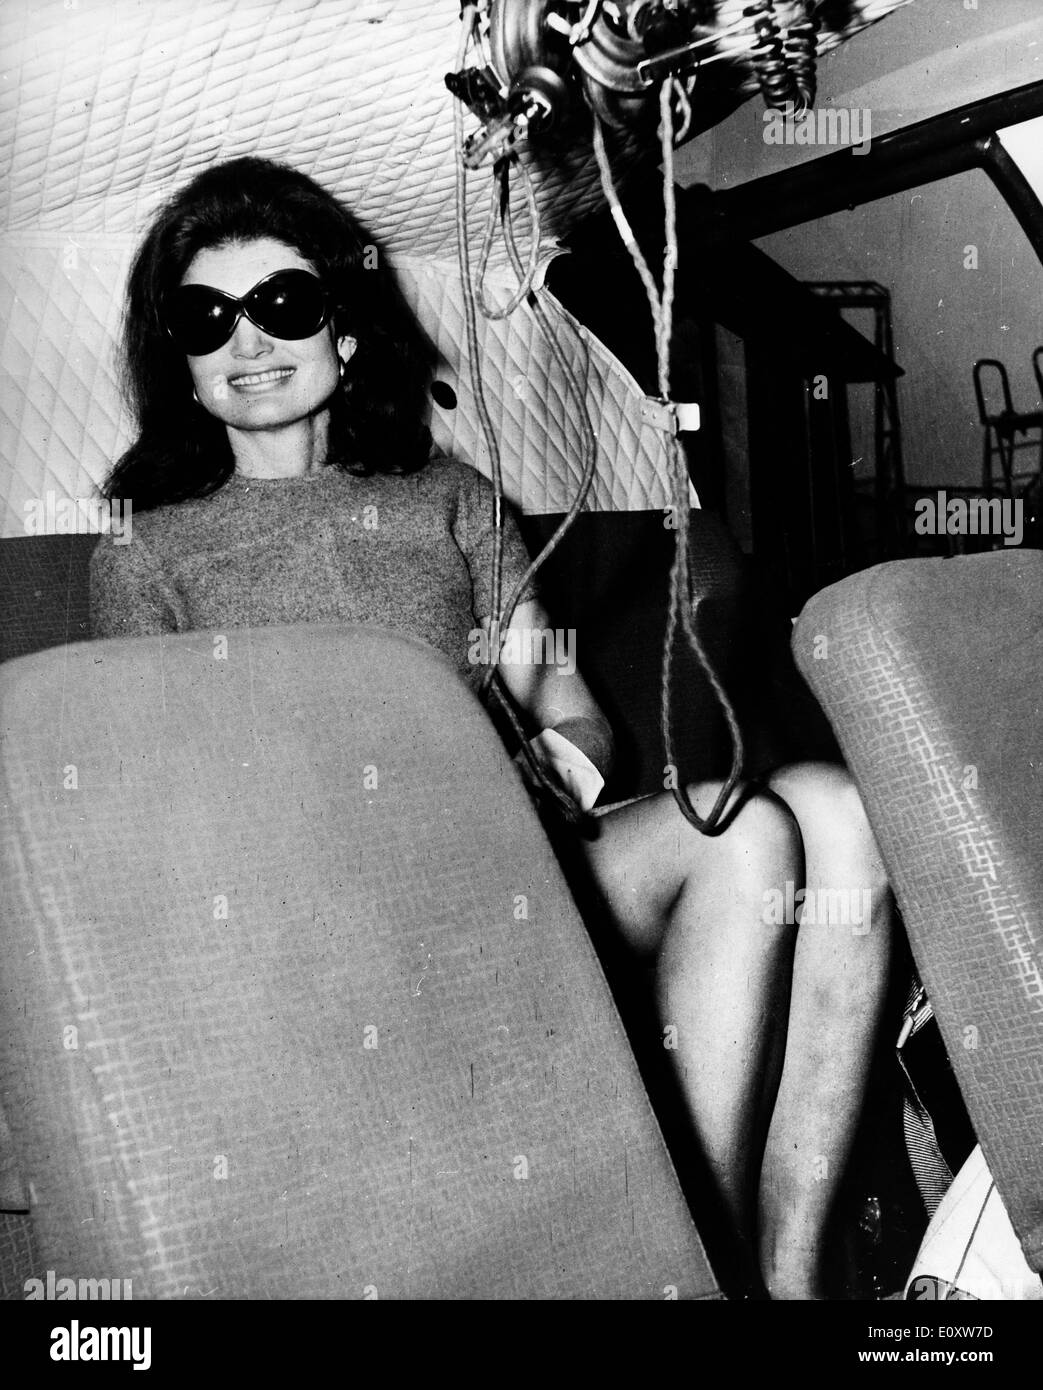 Jacqueline Kennedy Onassis sitting in a helicopter - Stock Image